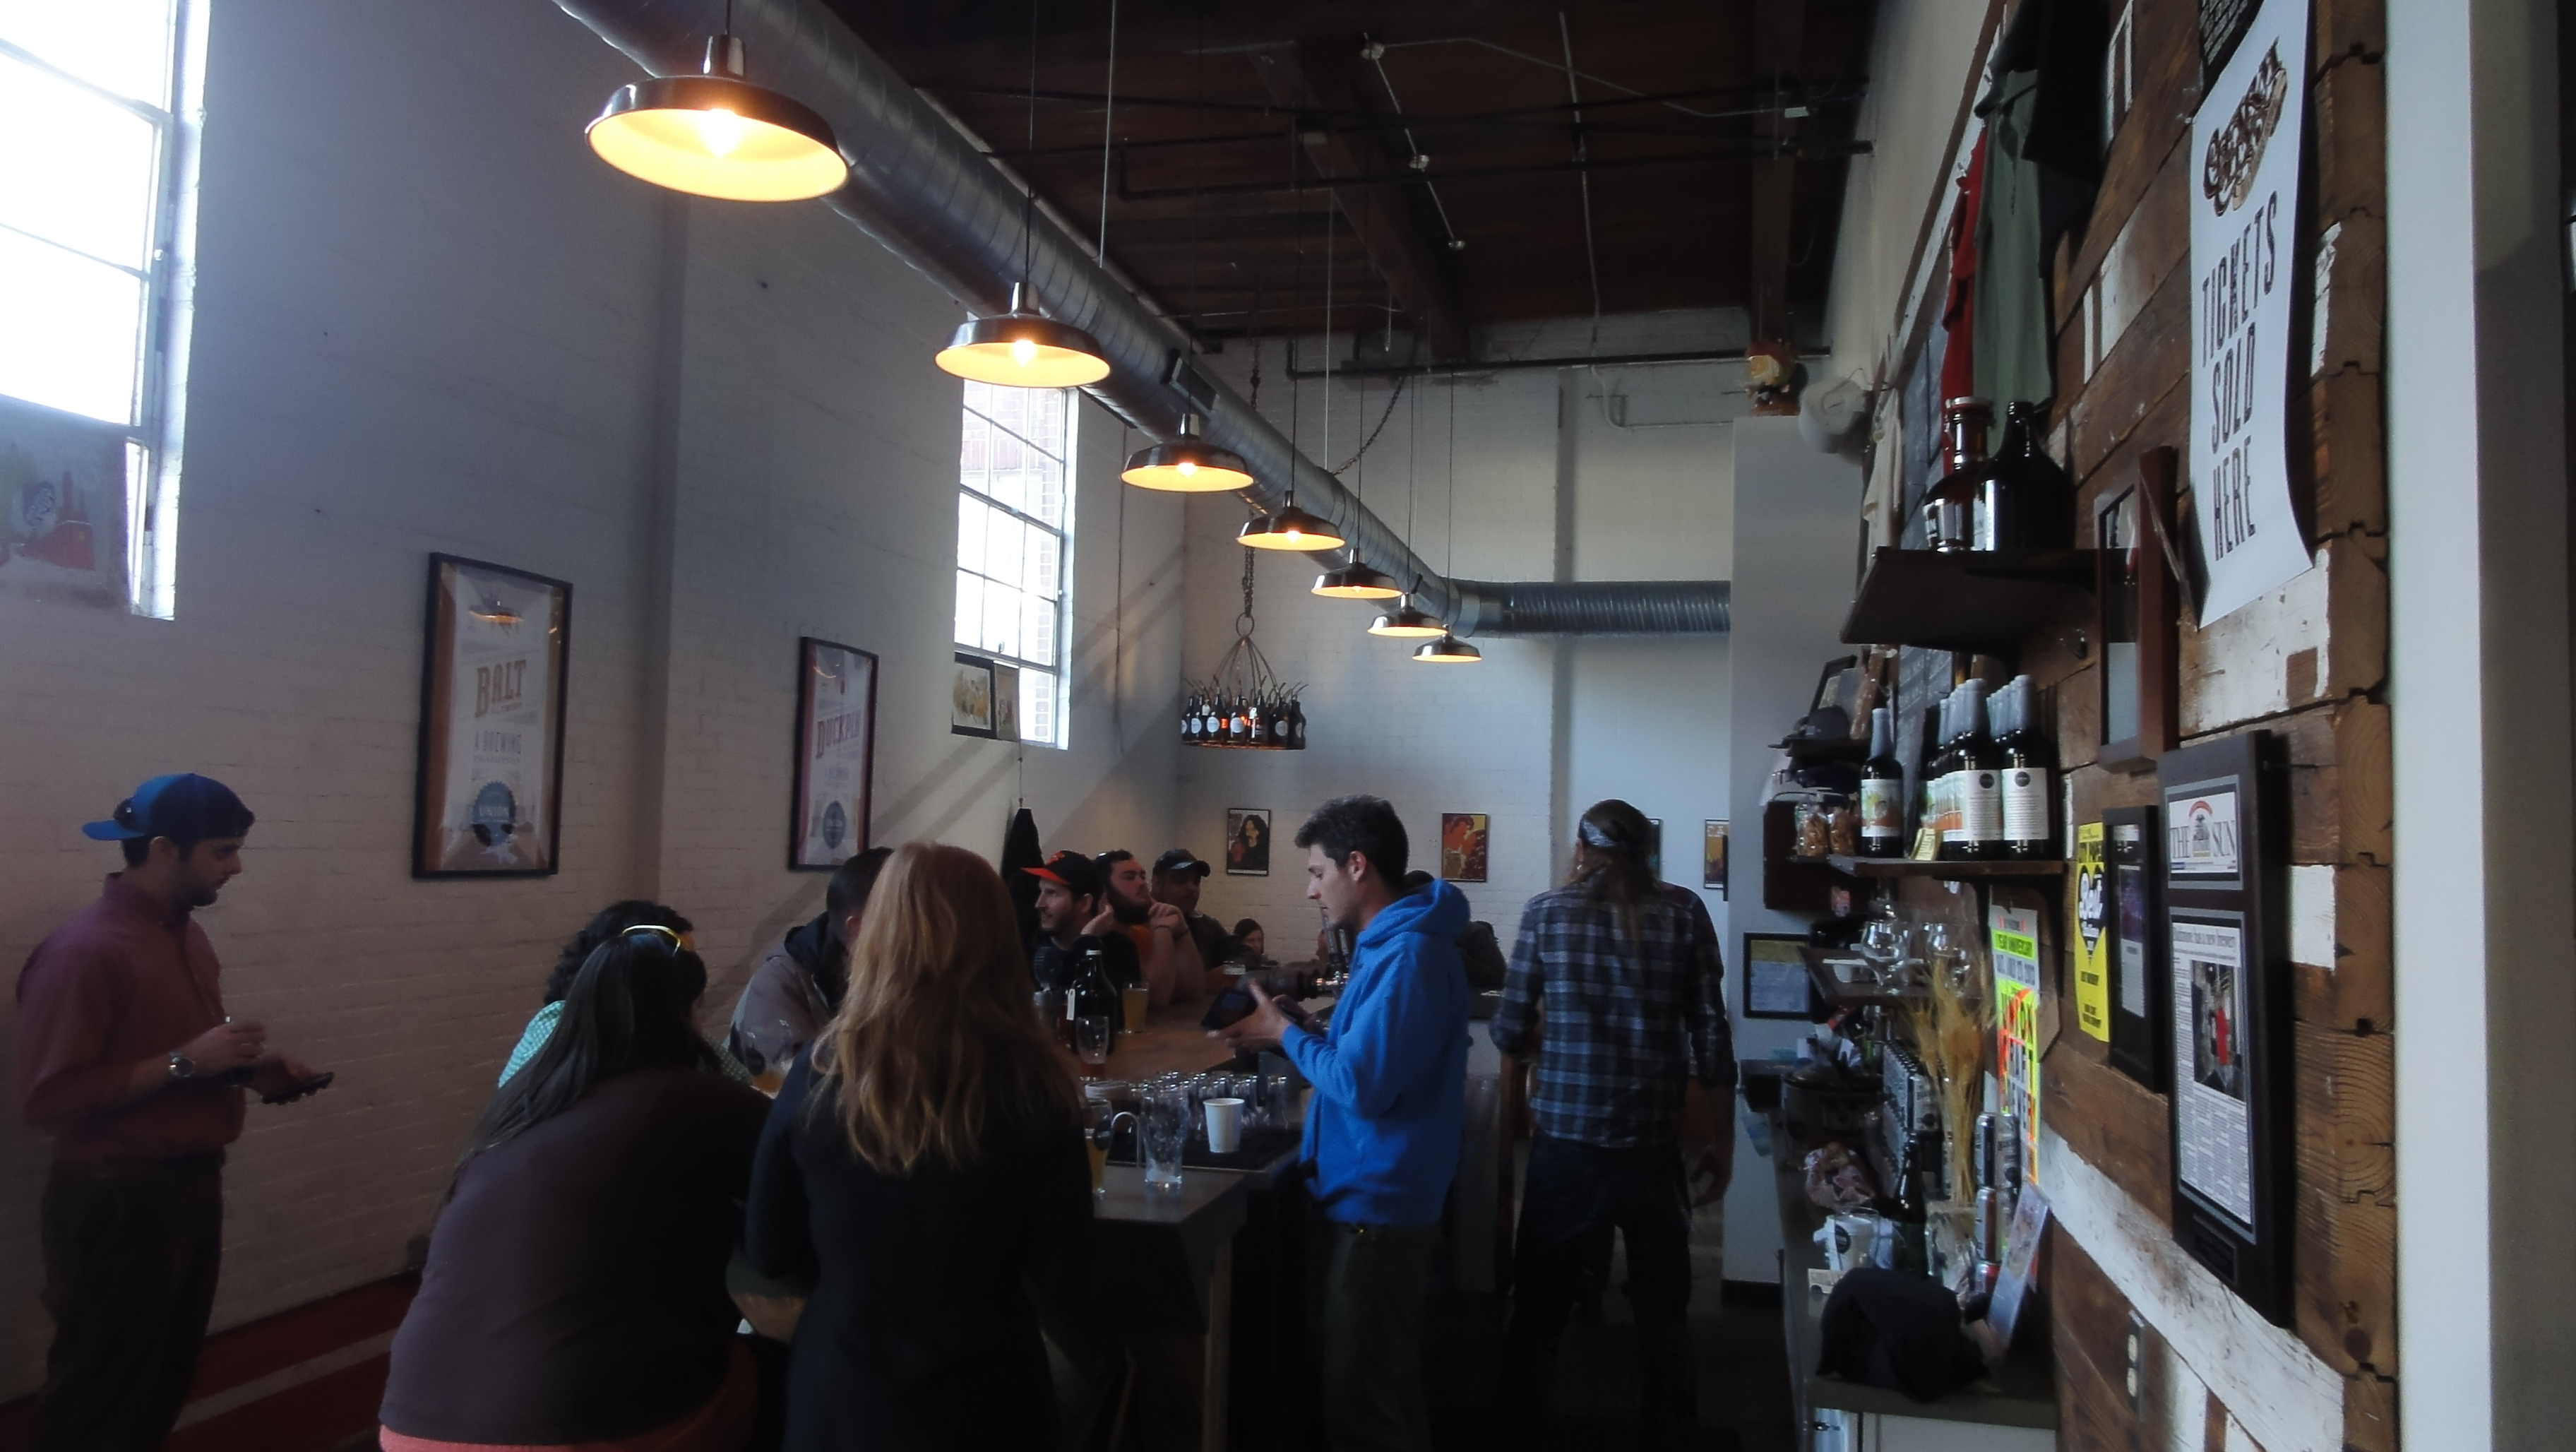 84 union craft brewing in baltimore md brews for Union craft brewing baltimore md